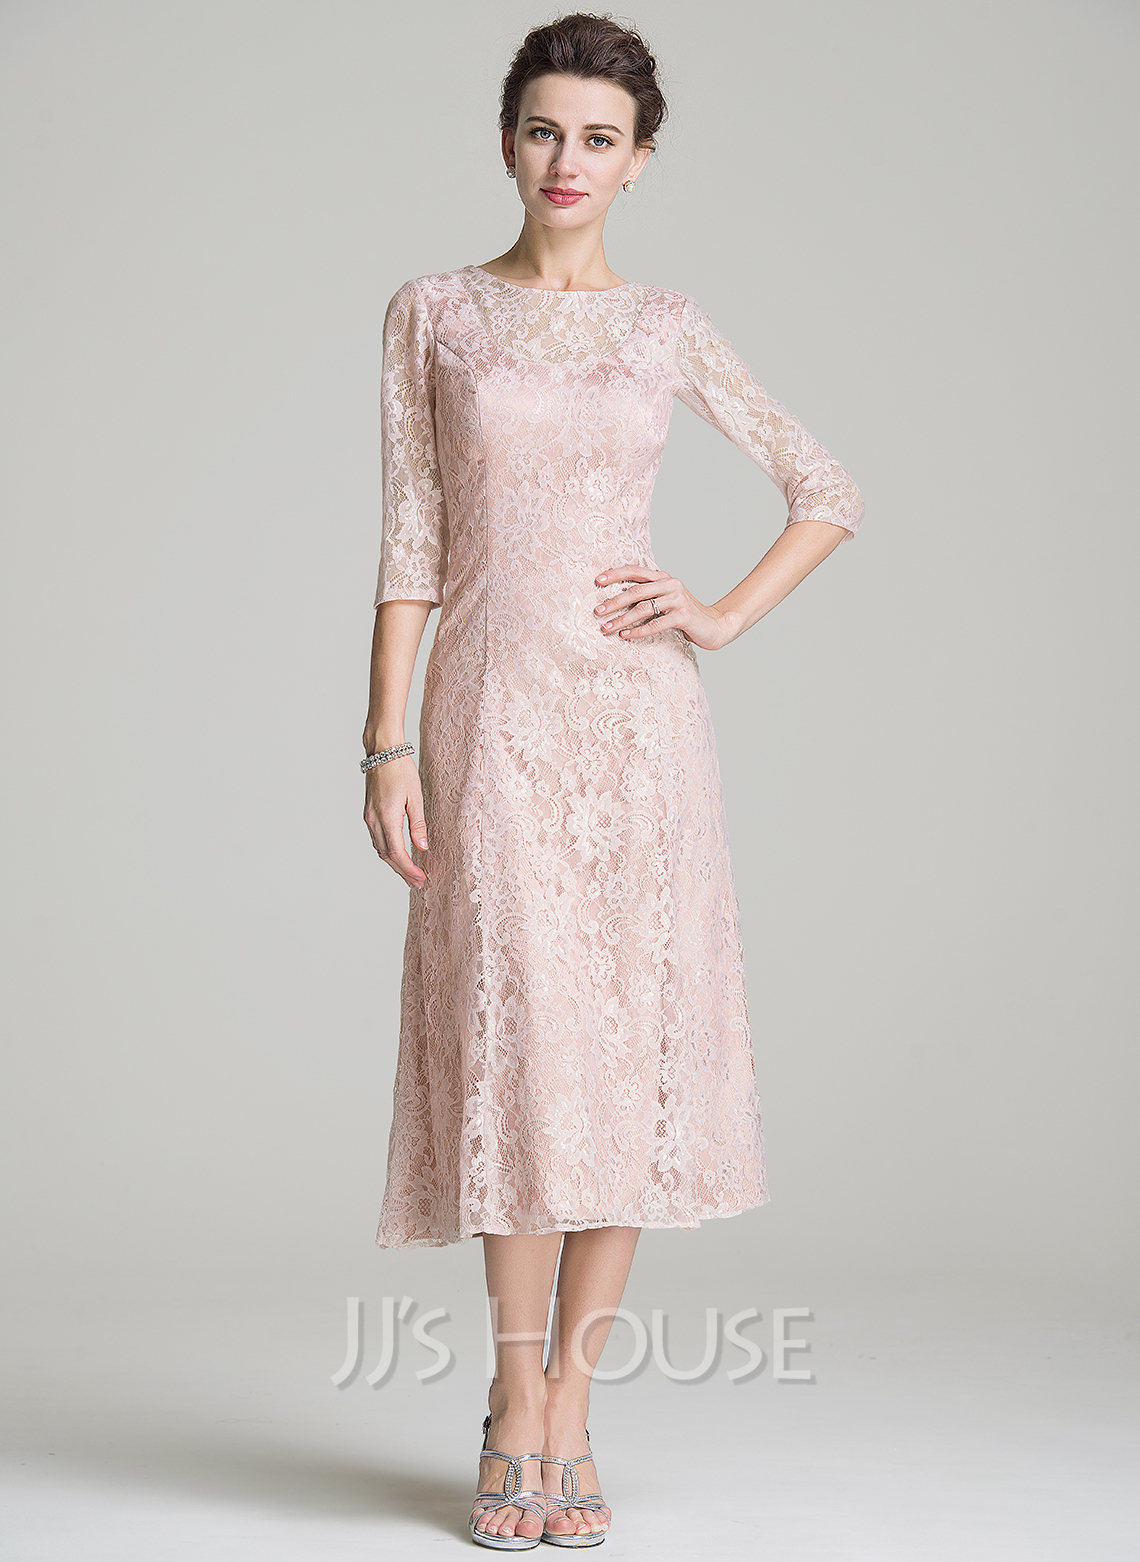 c0b85a8c2e62 A-Line/Princess Scoop Neck Tea-Length Lace Mother of the Bride Dress.  Loading zoom